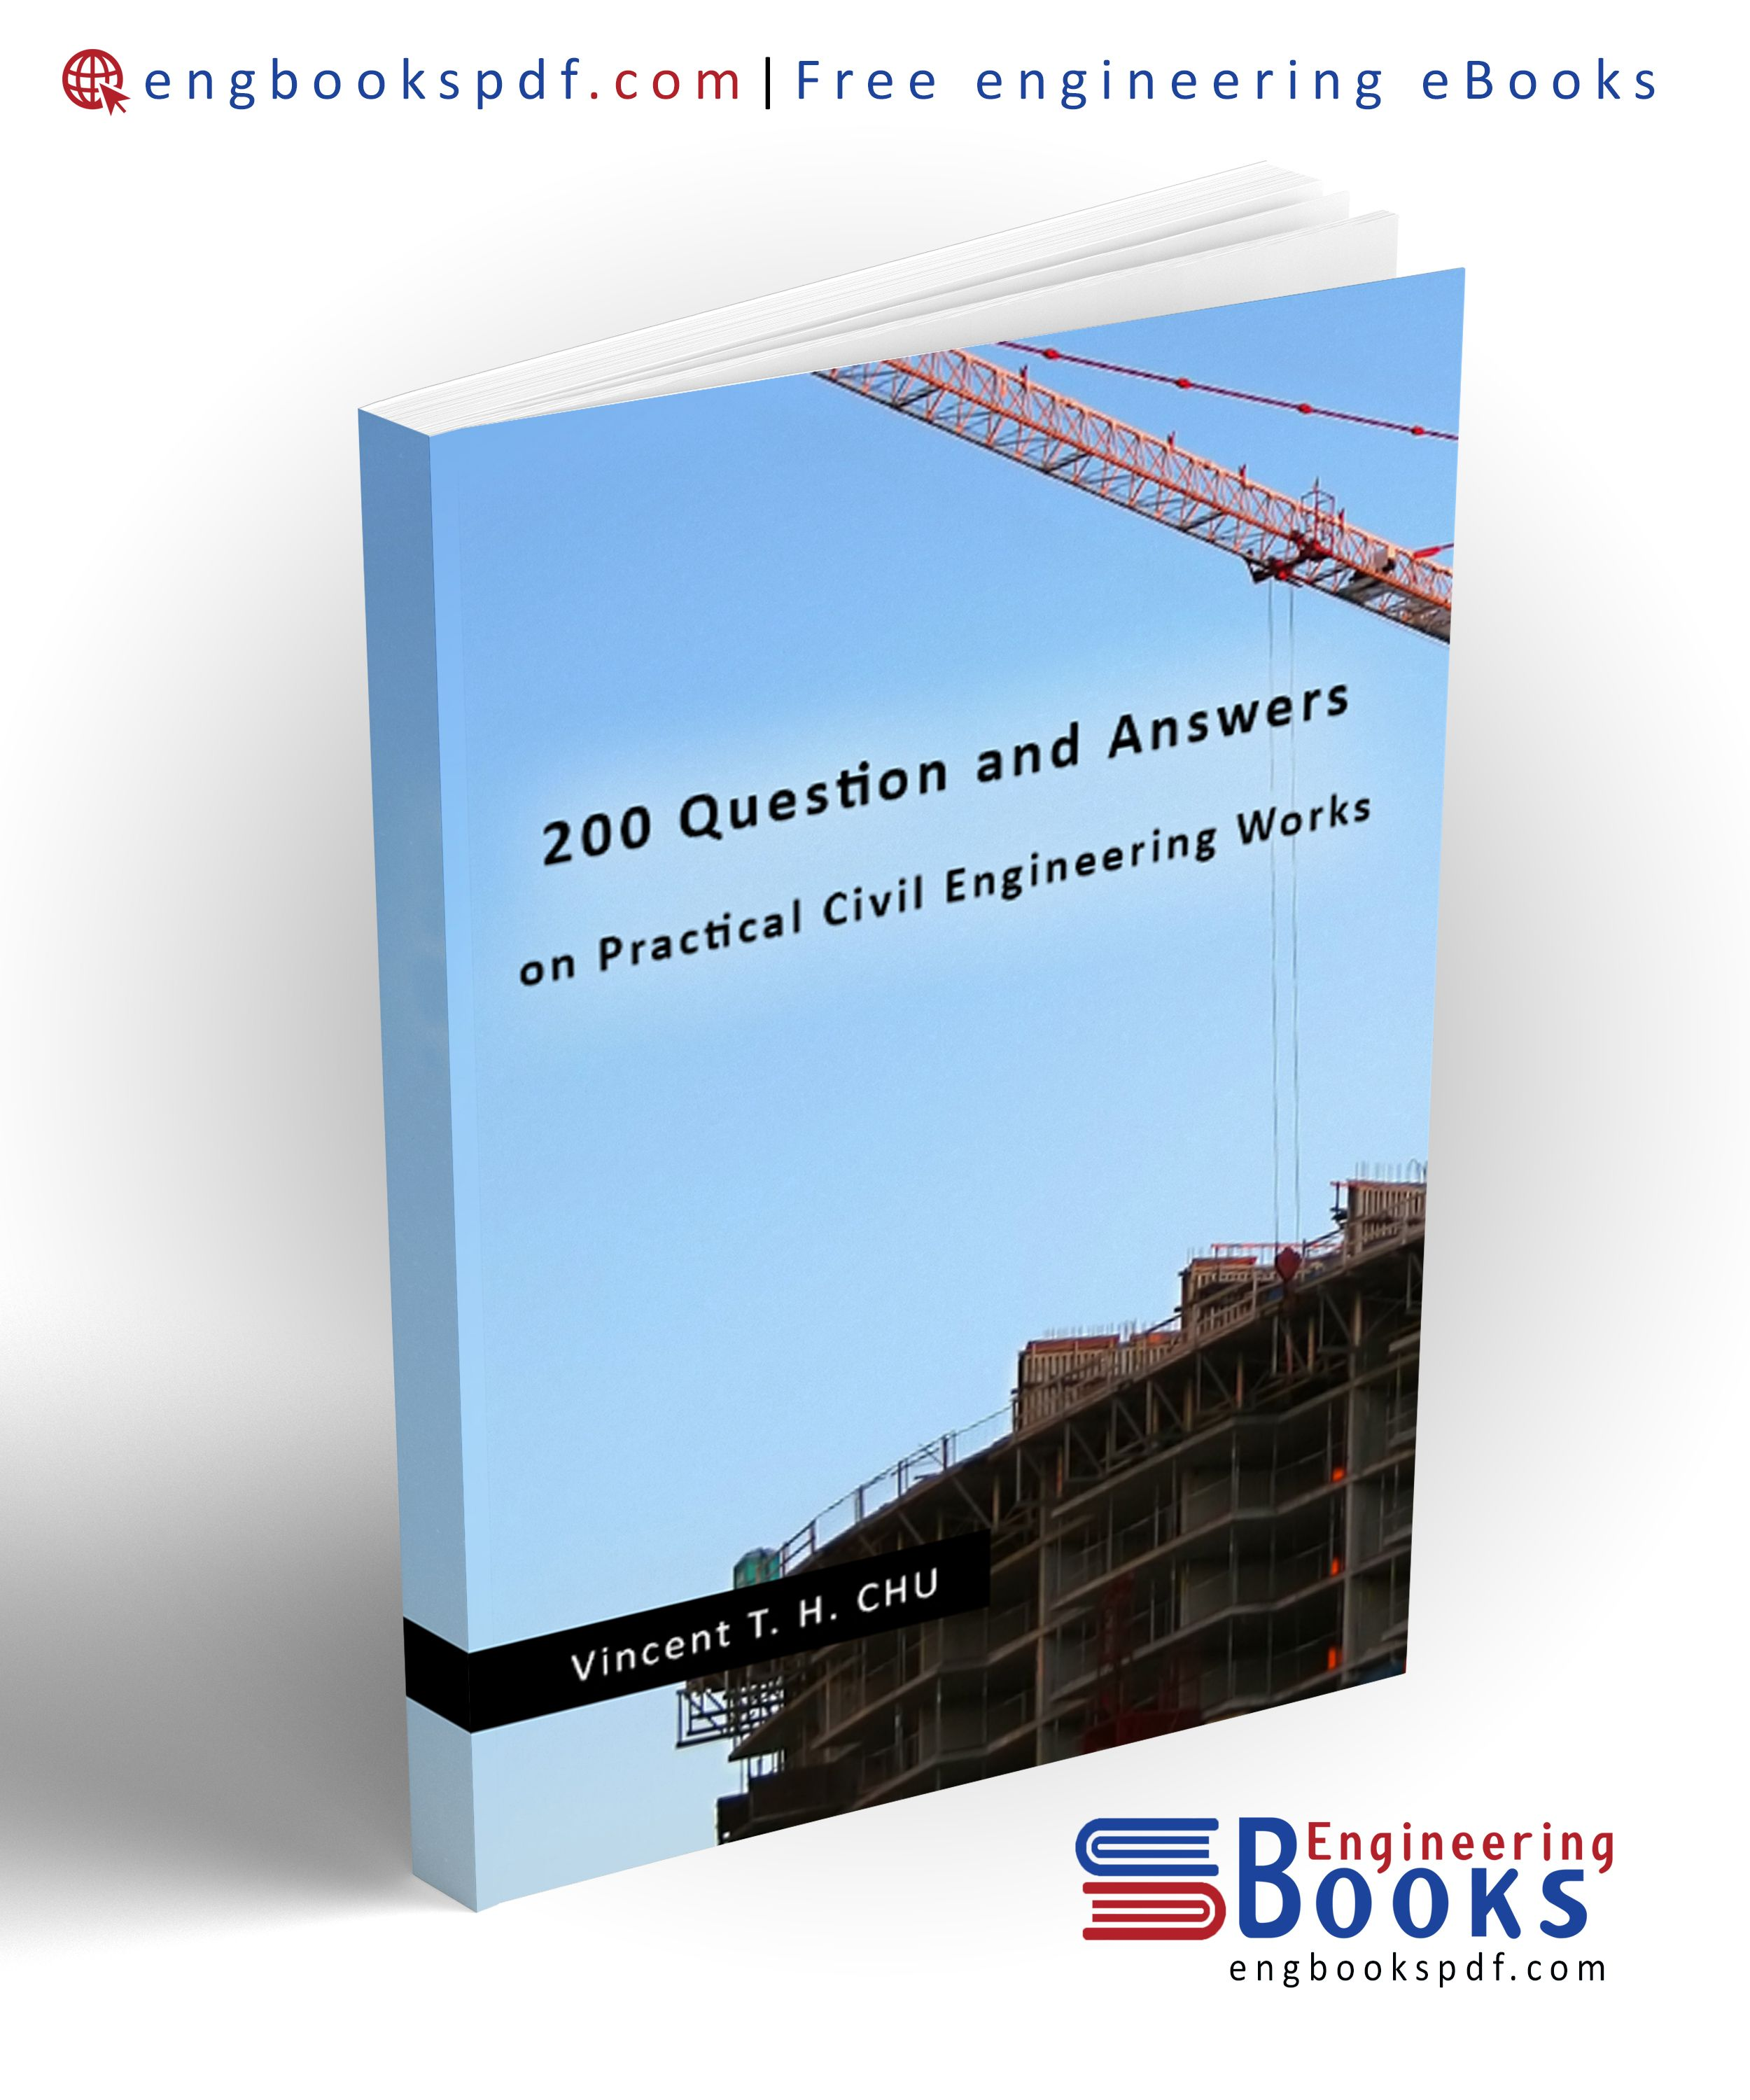 Download Pdf Of 200 Questions And Answers On Practical Civil